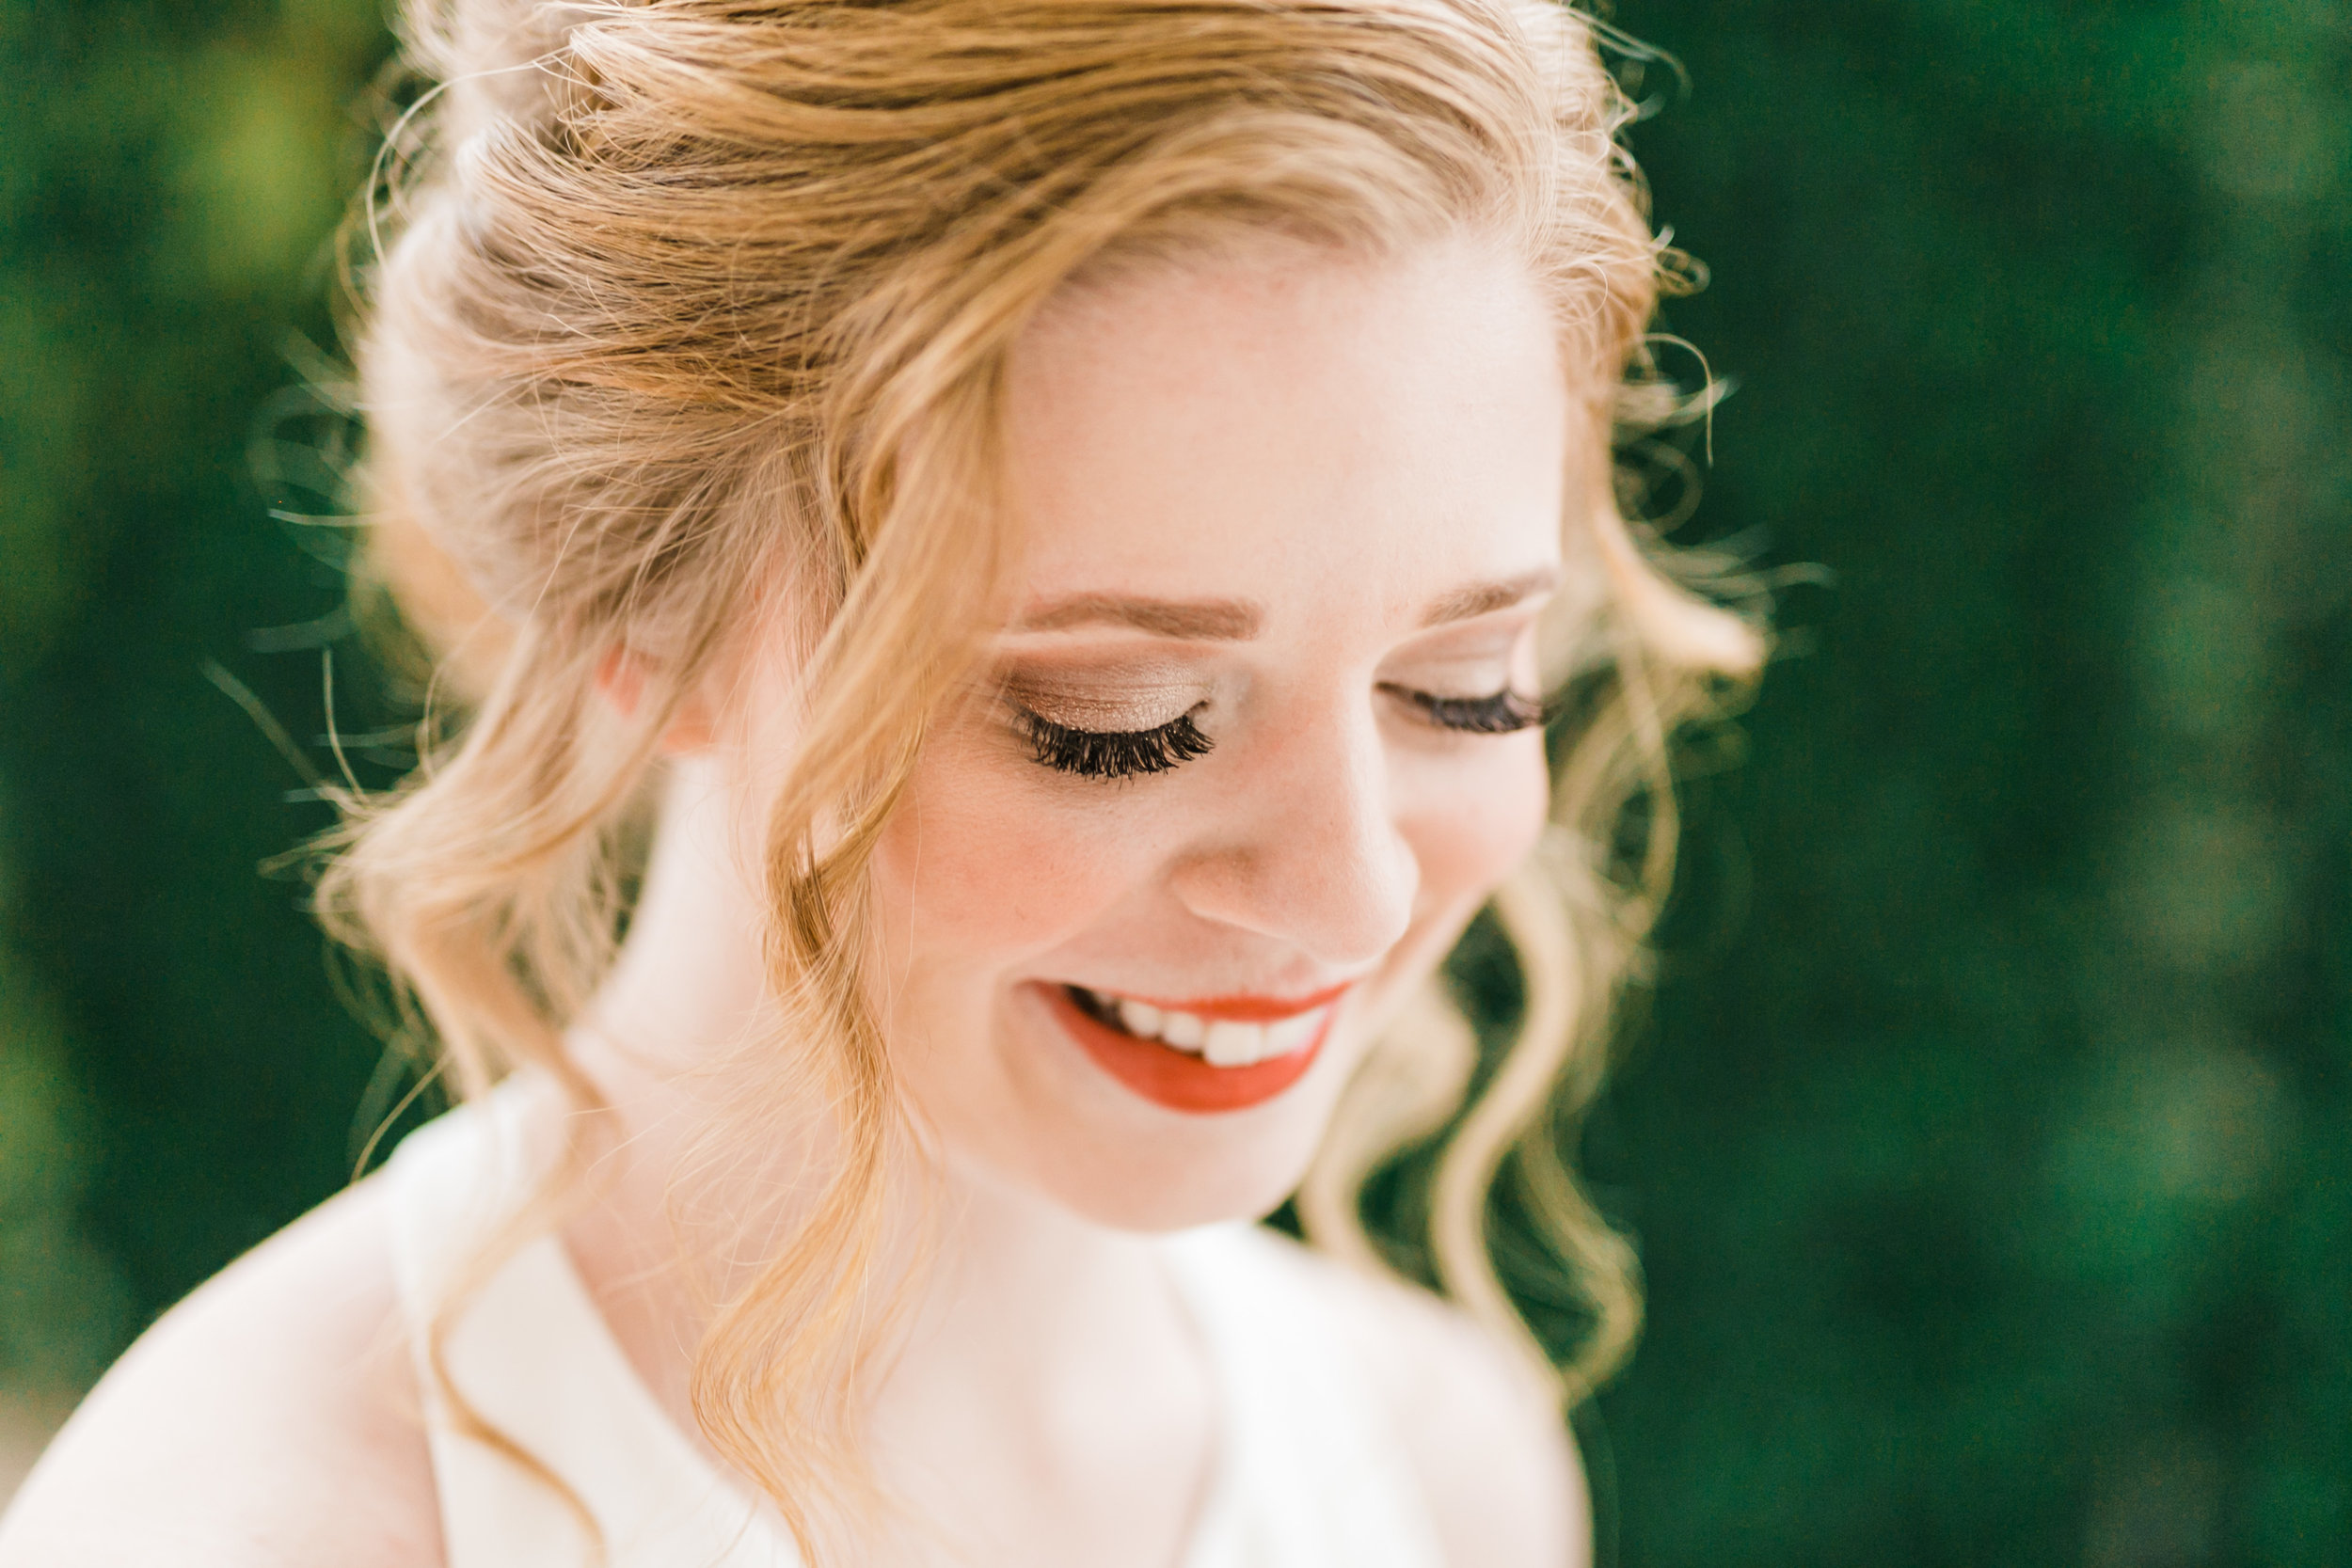 classic glam makeup on fair complexion bride with red hair